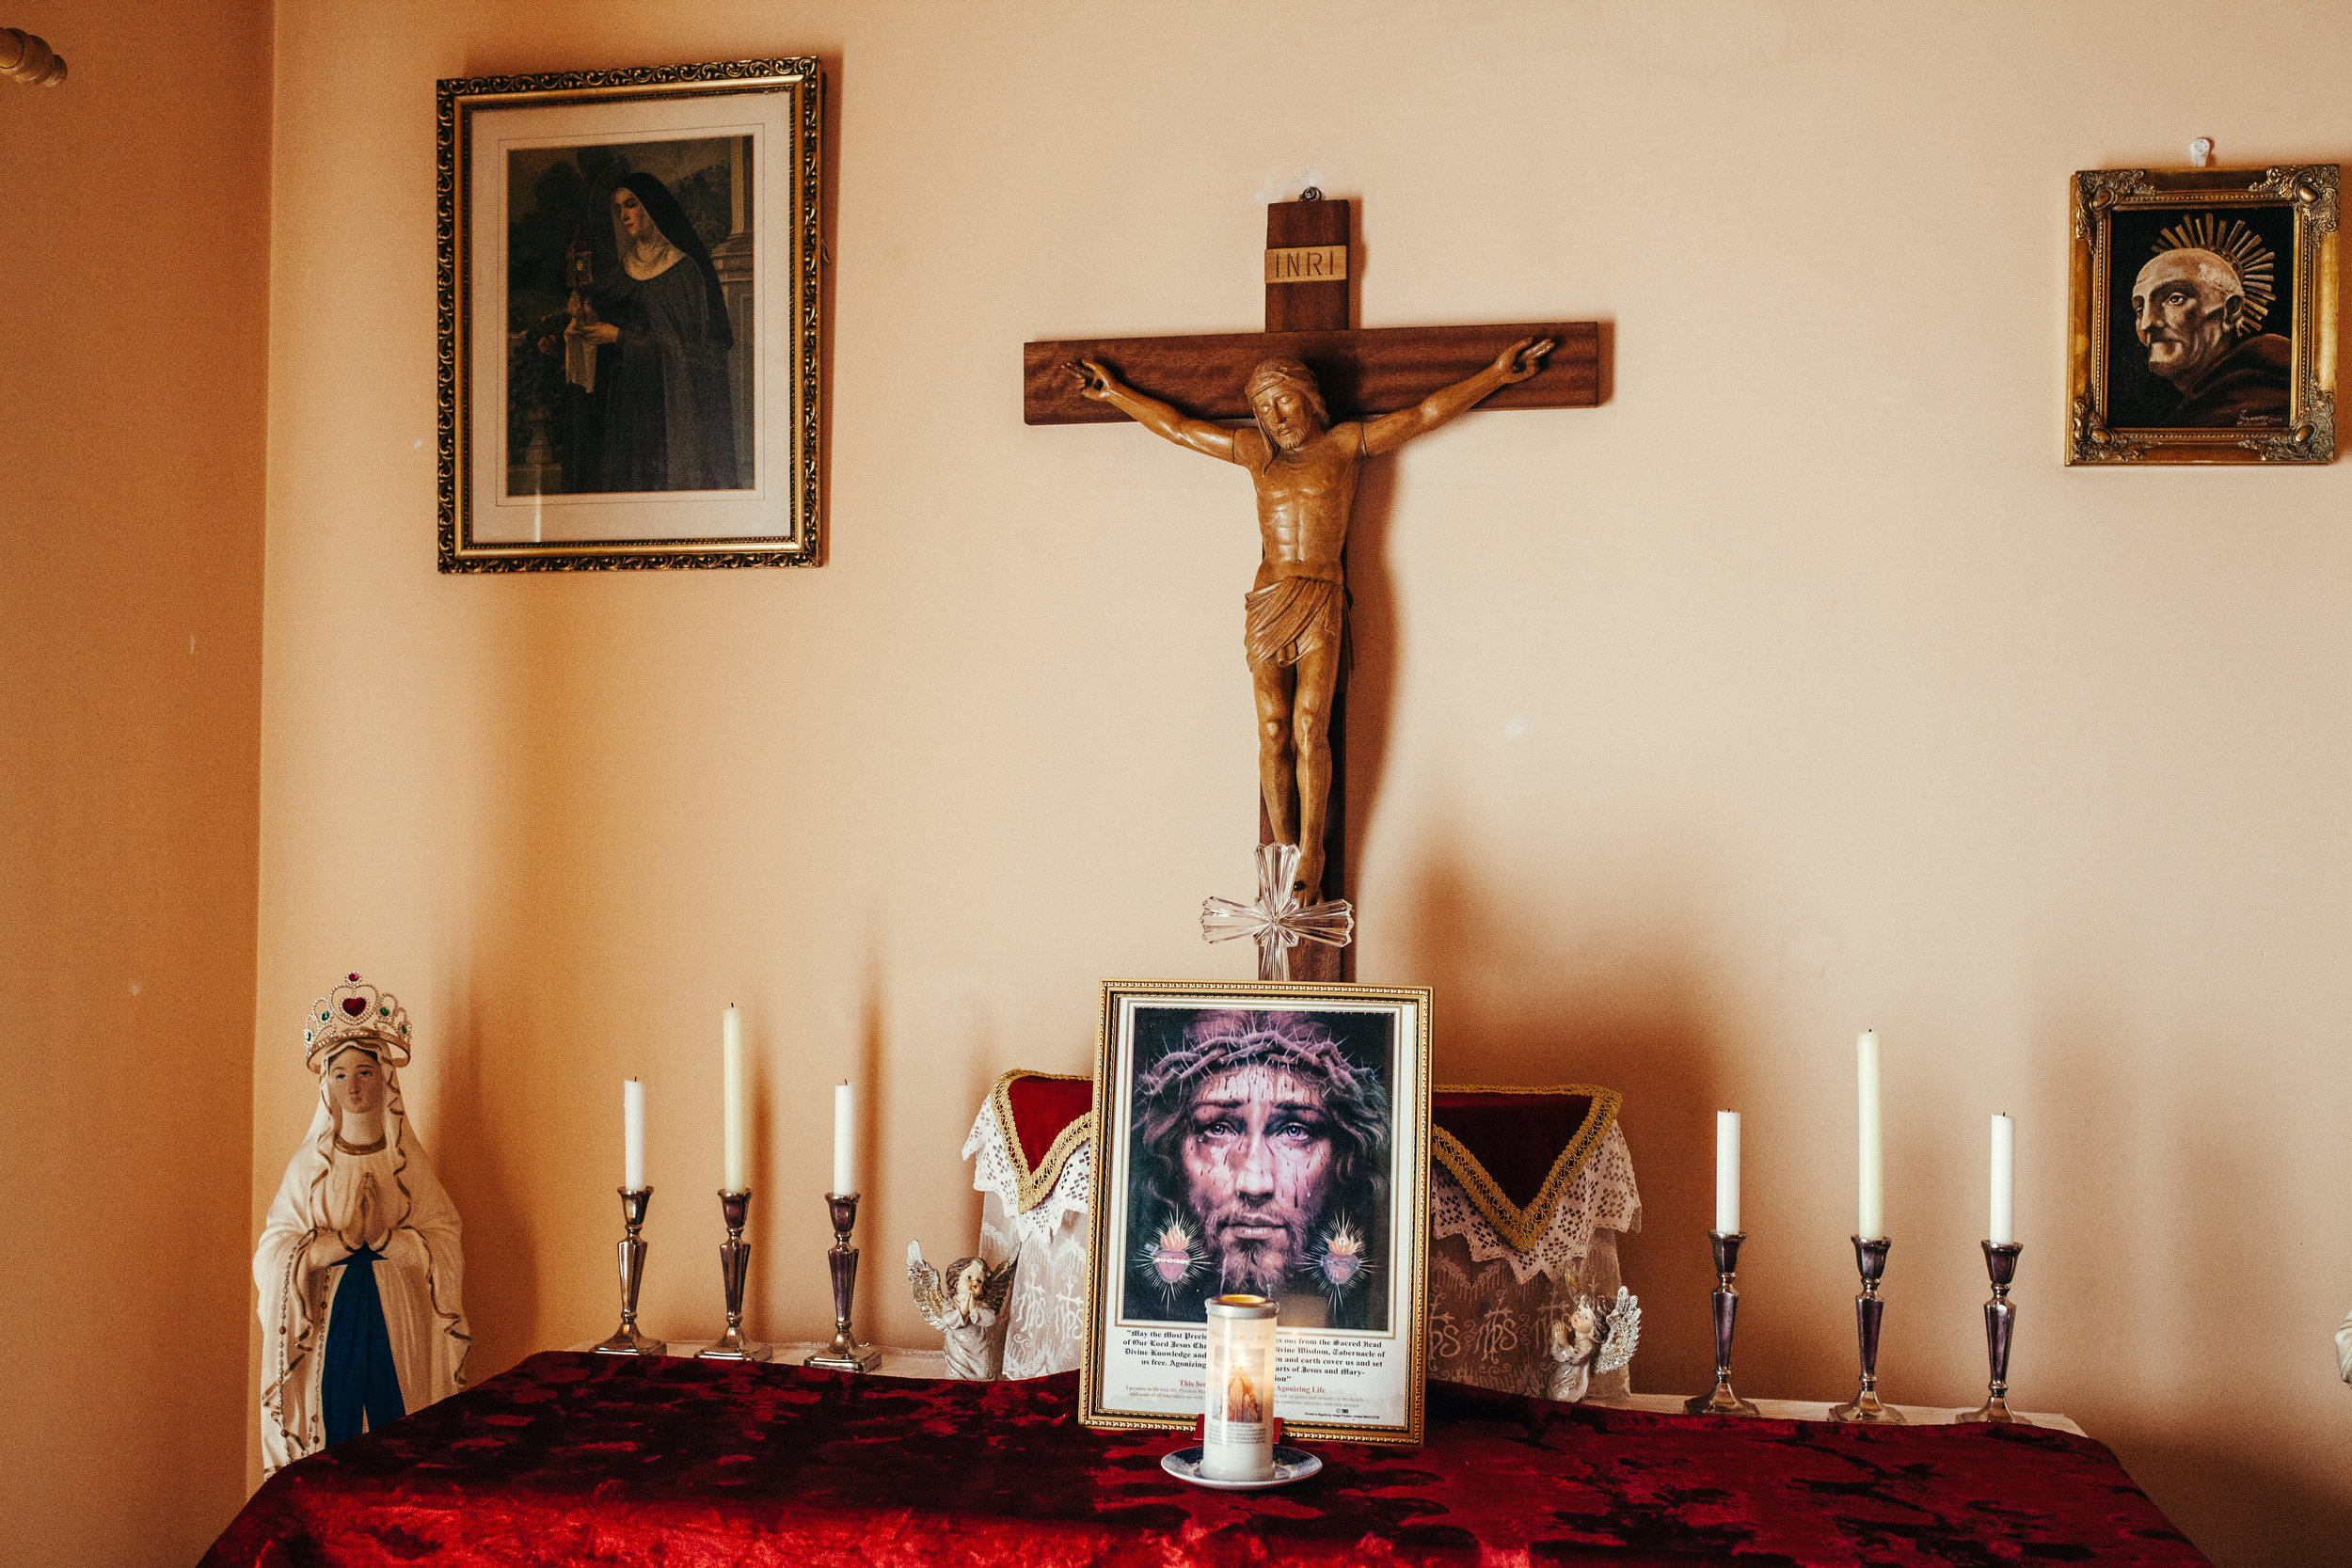 The Altar - Fr.David has two altars of which pictured here contains a relic of the true Cross of Christ.